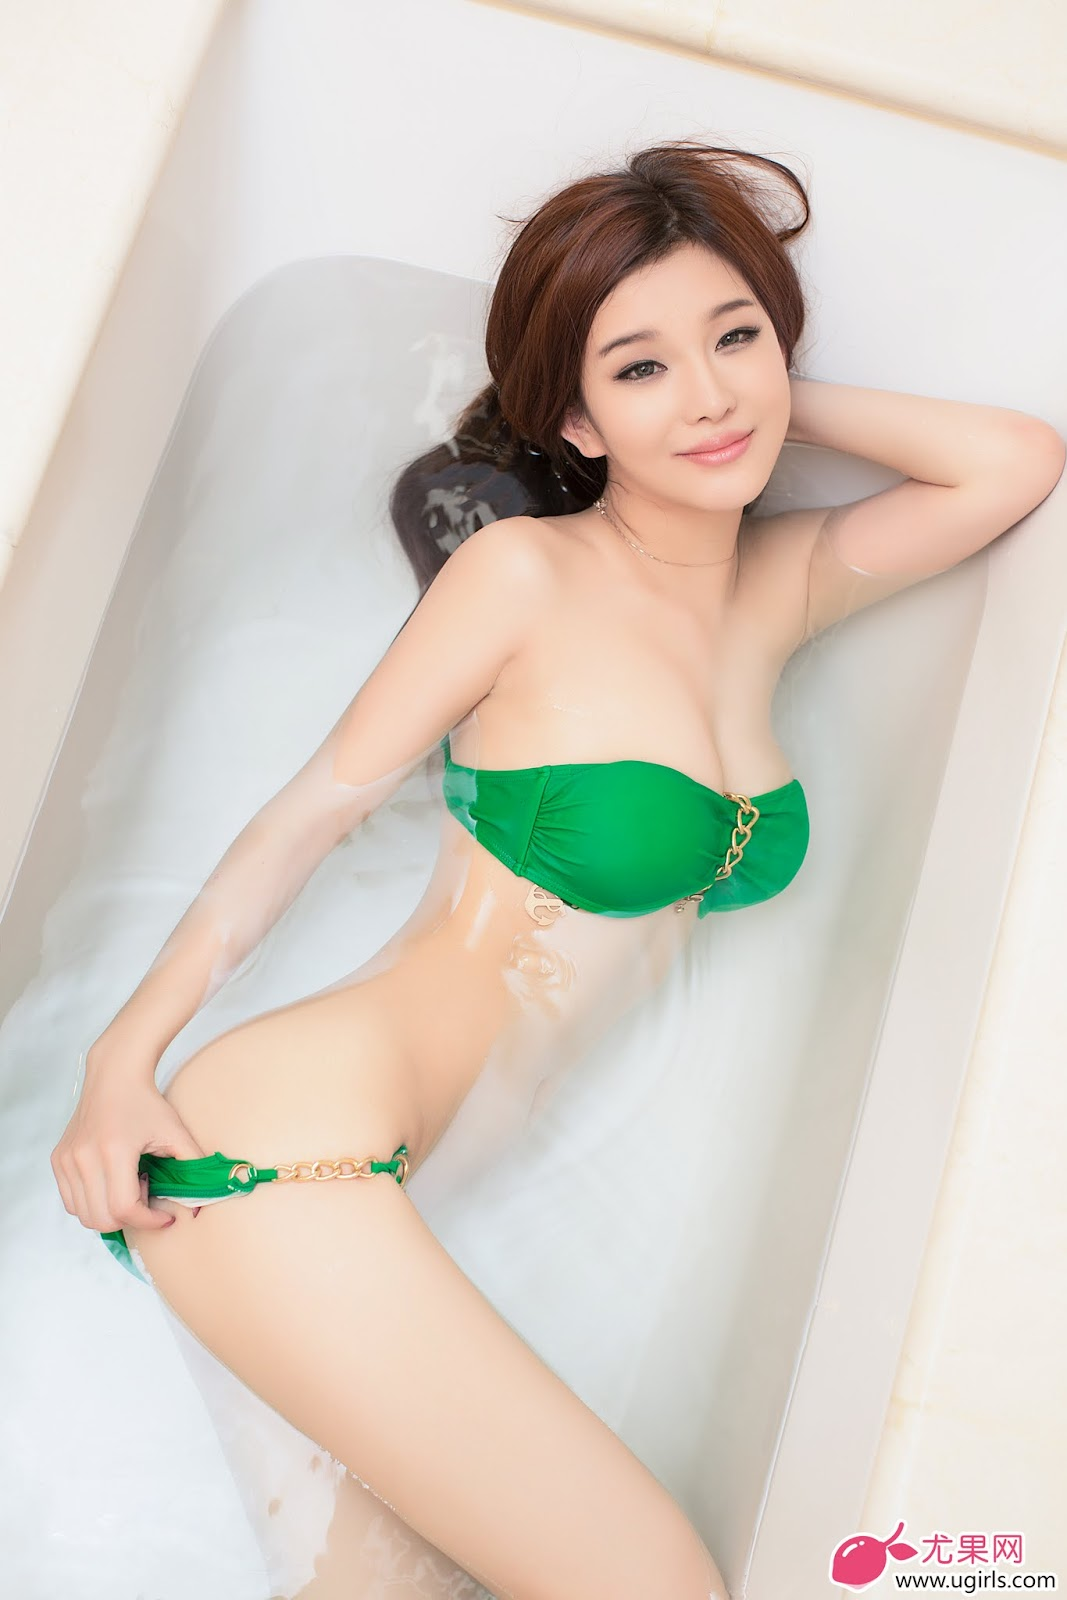 EZ0A0794 - Ugirls No.016 Model 纯小希 (Chun Xiao Xi)